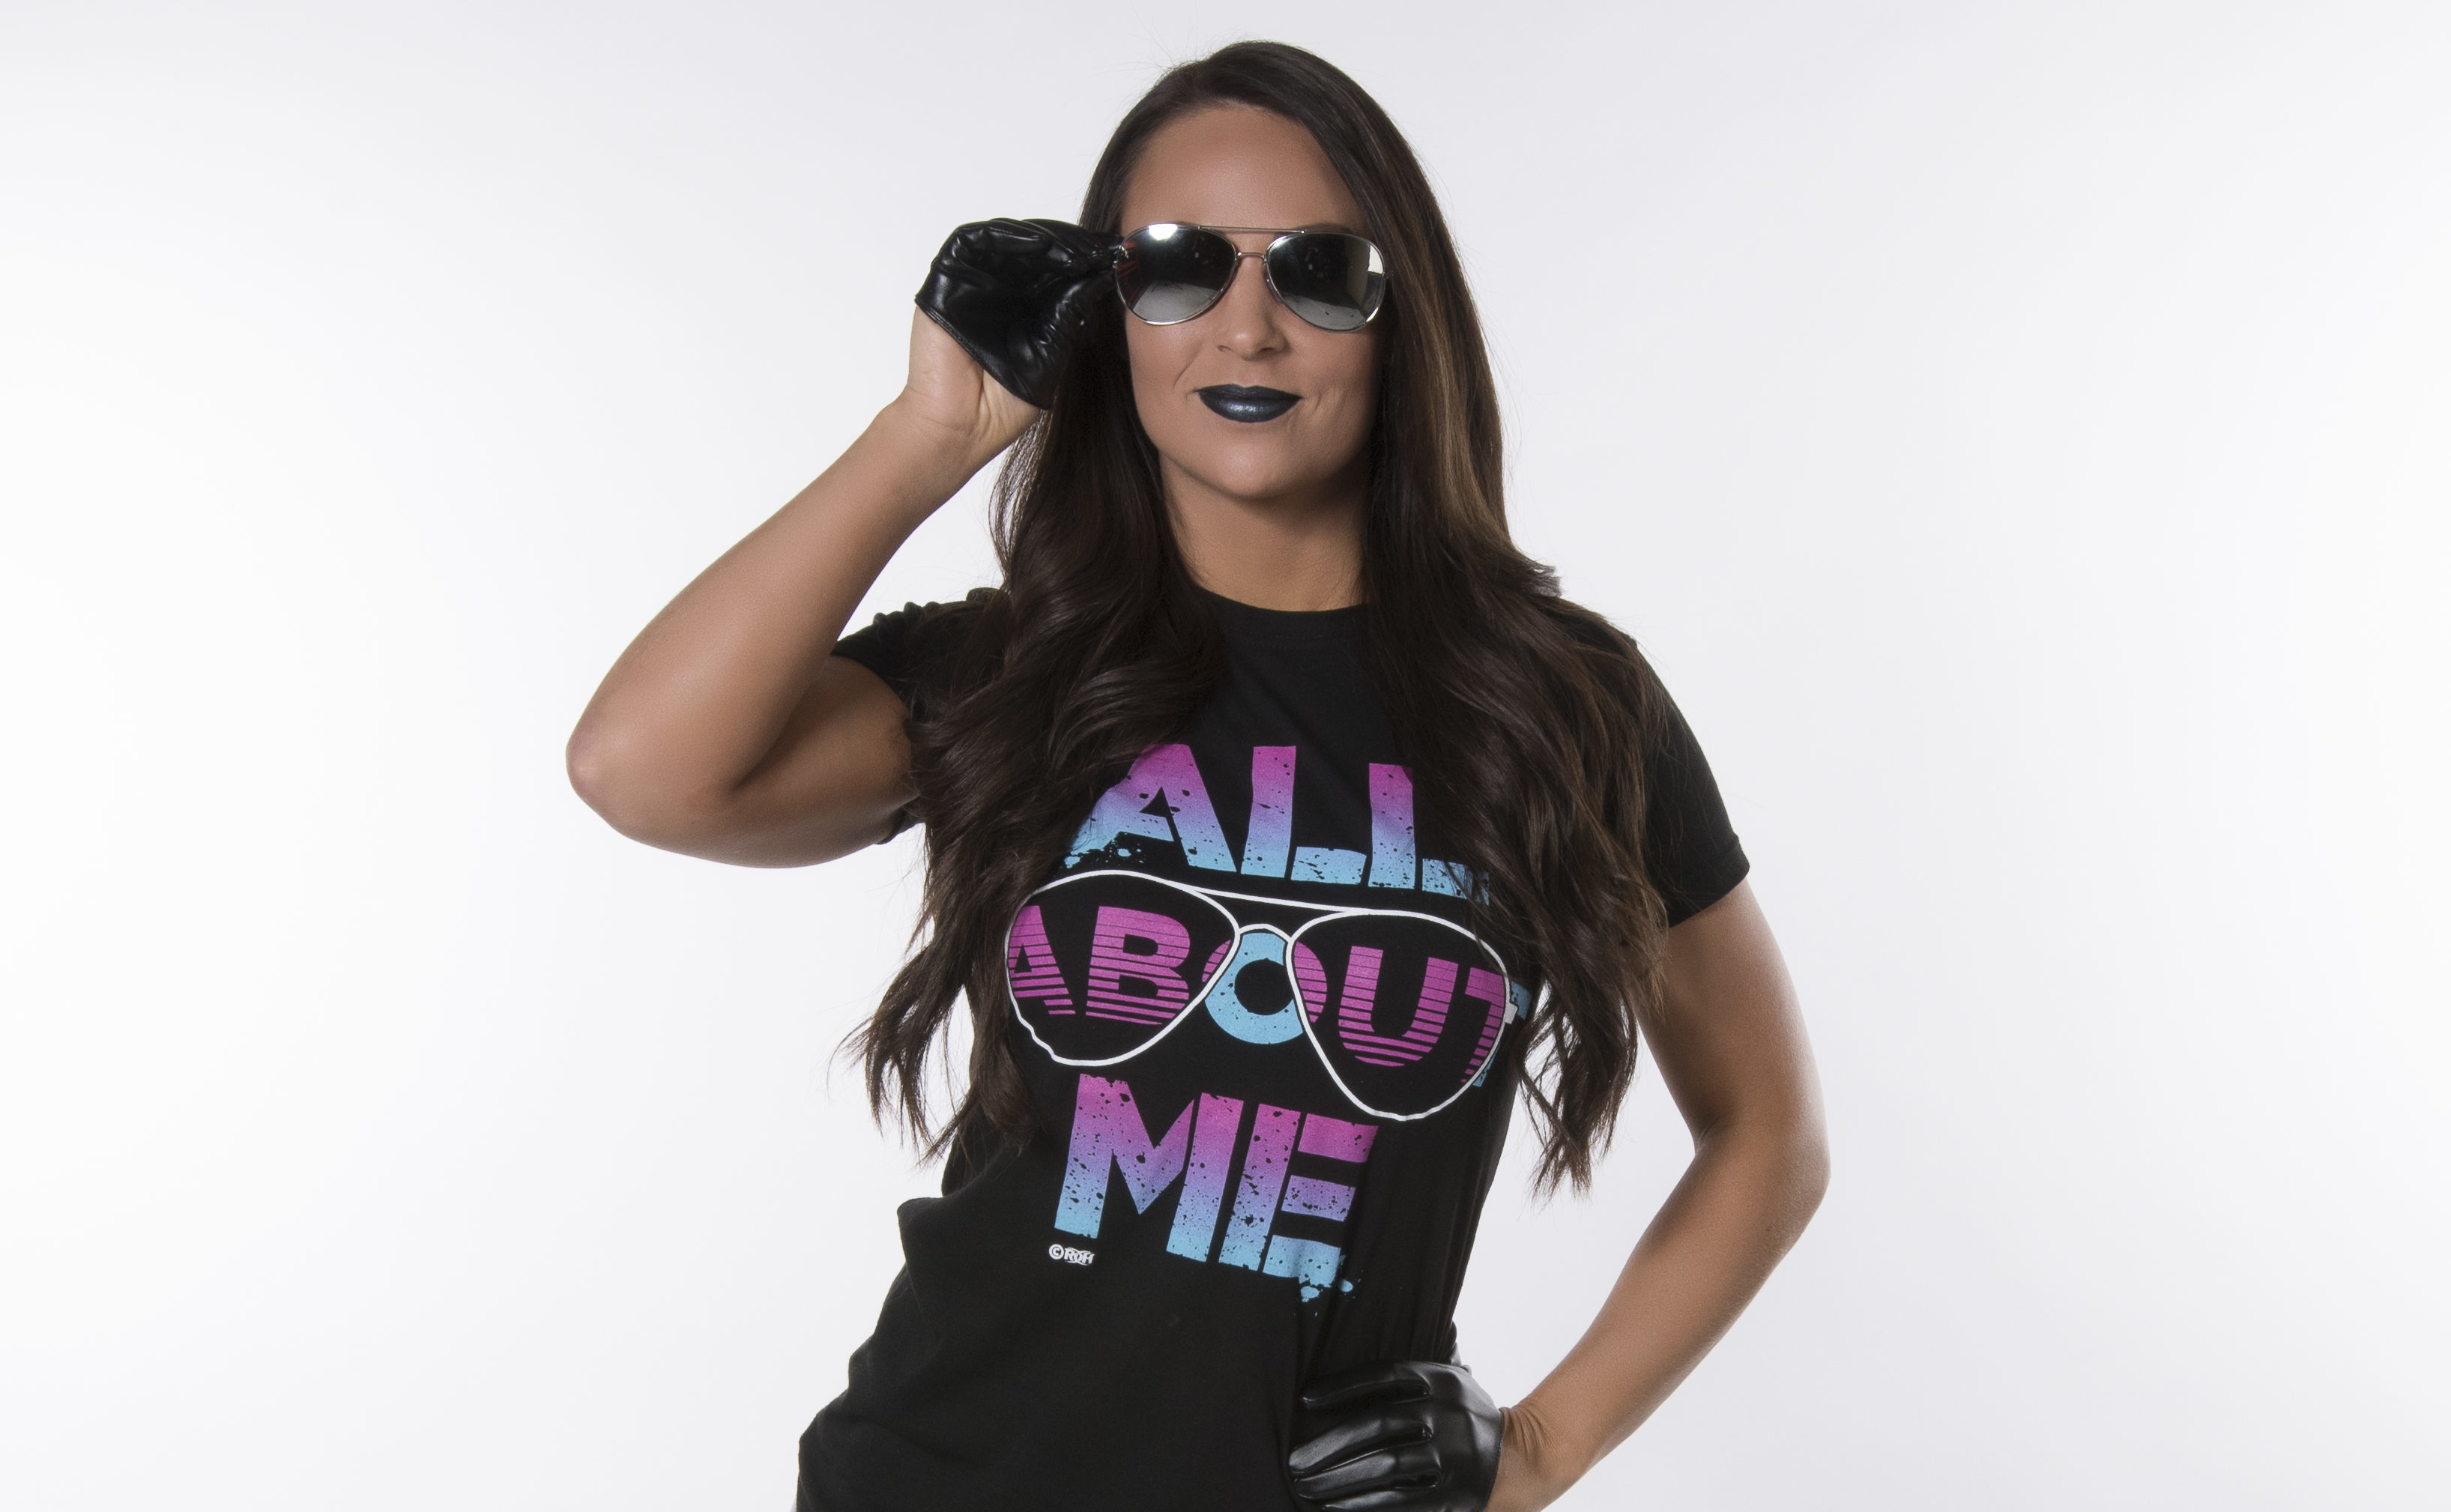 Wrestler Tenille Dashwood (RING OF HONOR / Patty McCarthy)